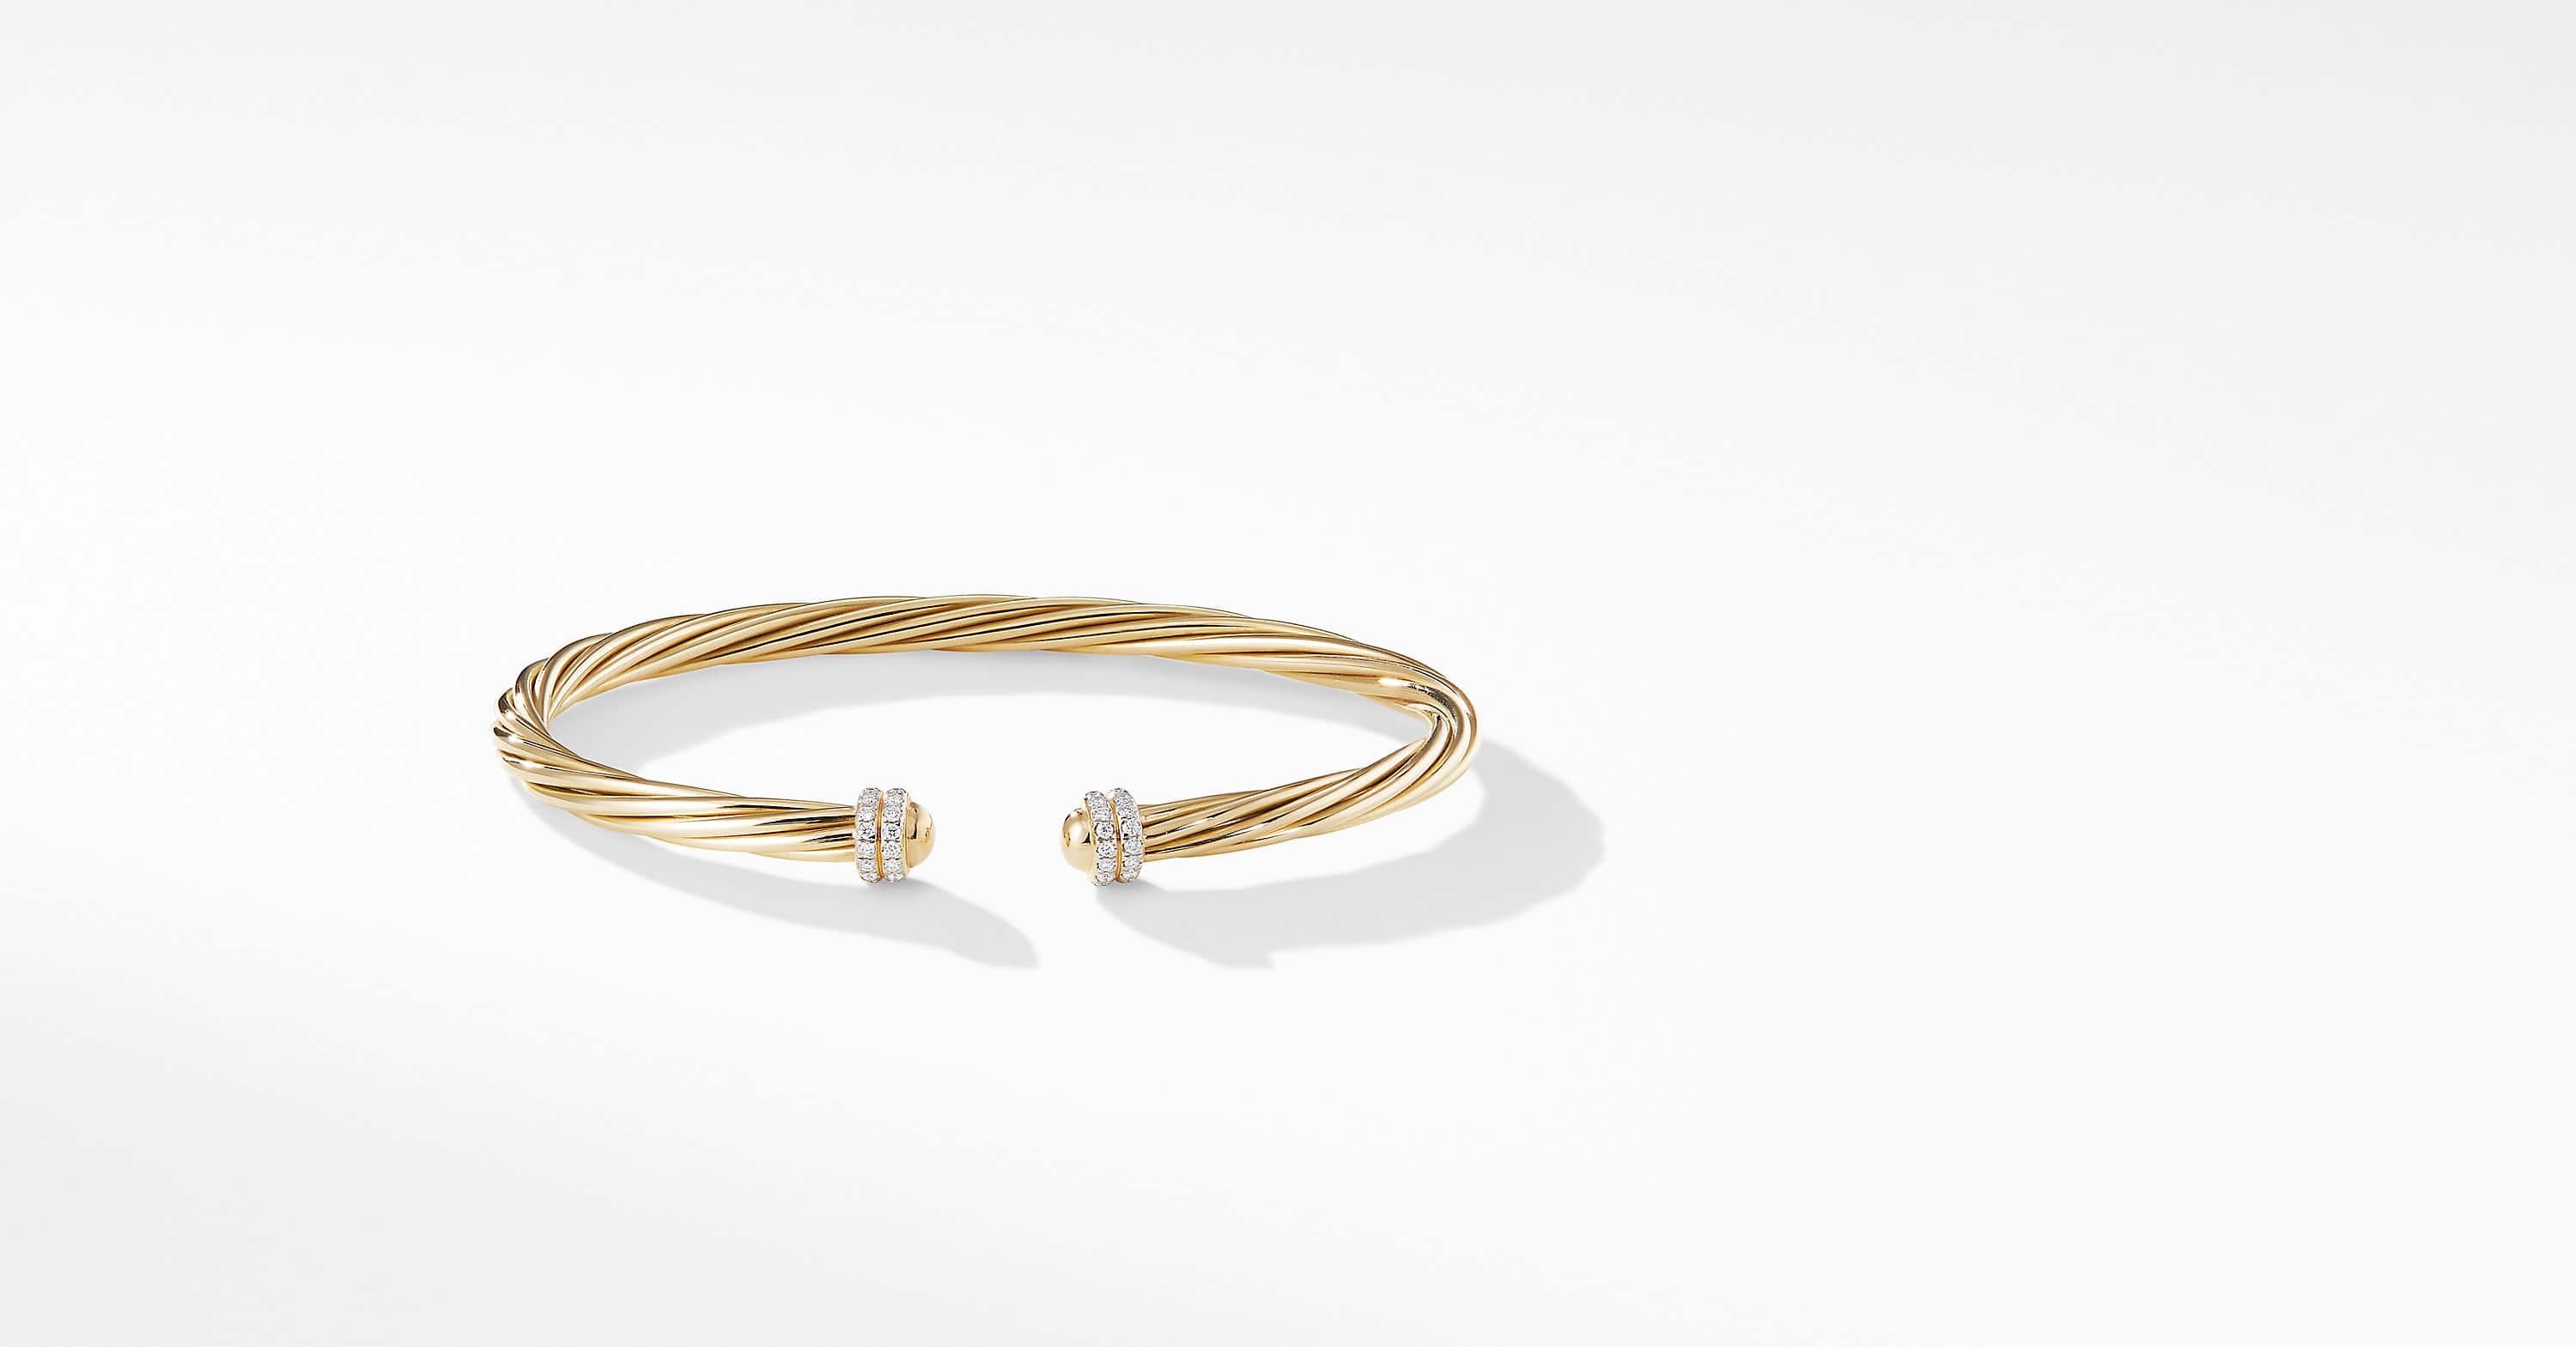 Helena Bracelet in 18K Yellow Gold with Diamonds